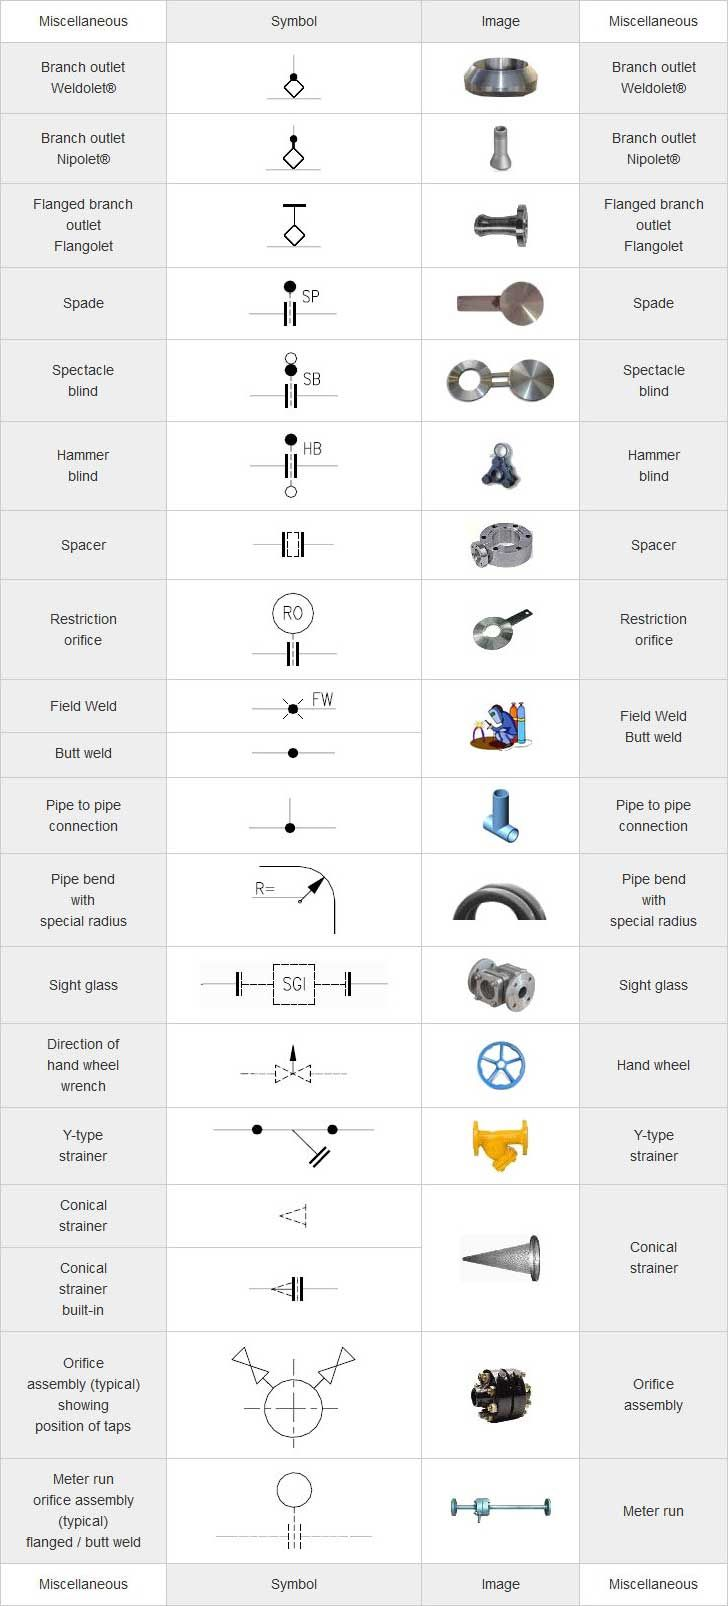 boiler wiring diagram s plan ezgo txt ignition switch mechanical symbols for isometric drawings   pneumatic in 2019 engineering, piping ...